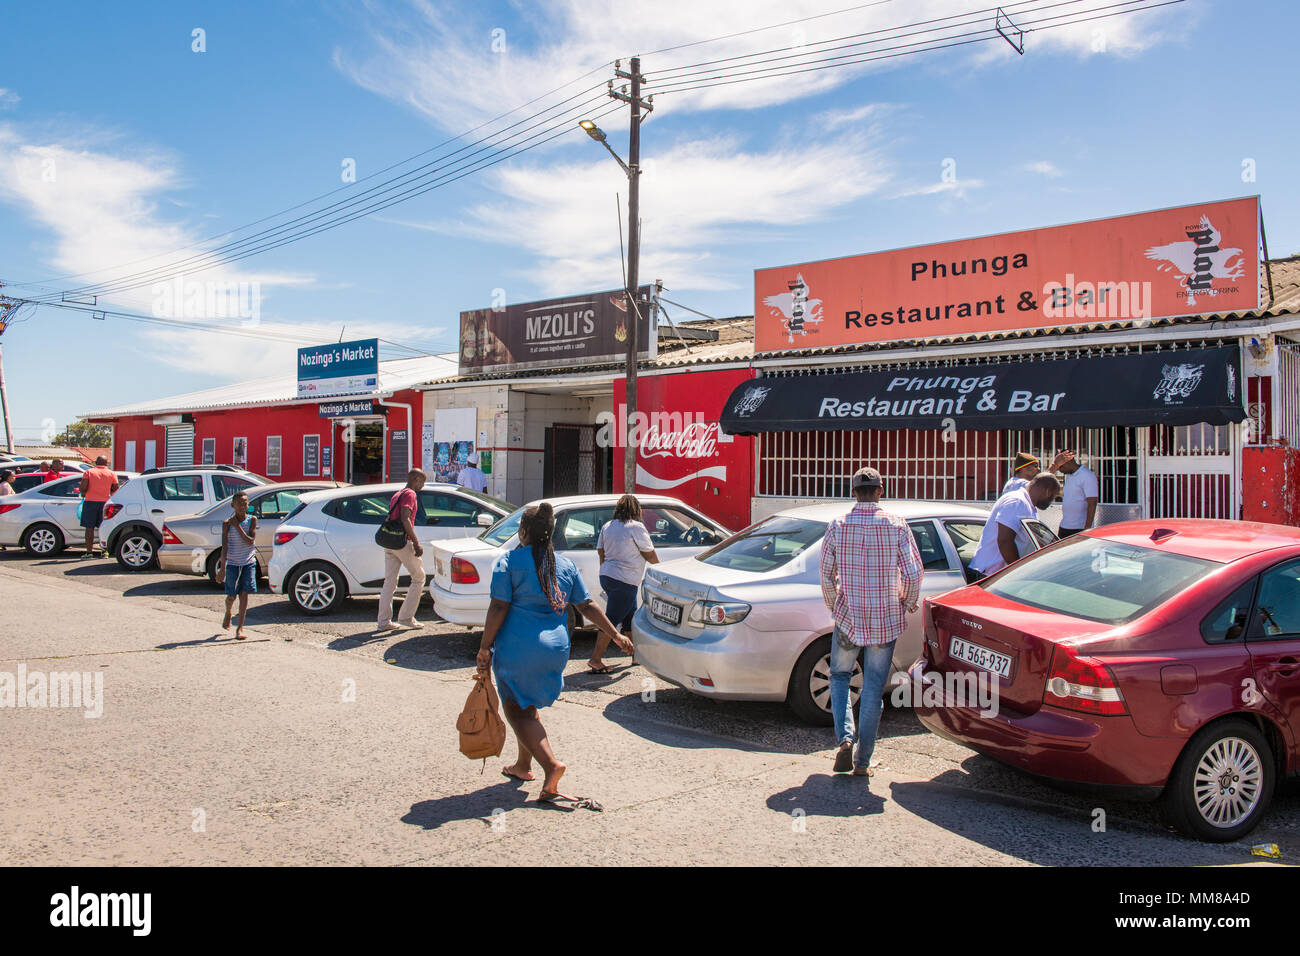 A cluster of cars sits outside local businesses as people mill about in Guguletu township in Cape Town, South Africa - Stock Image